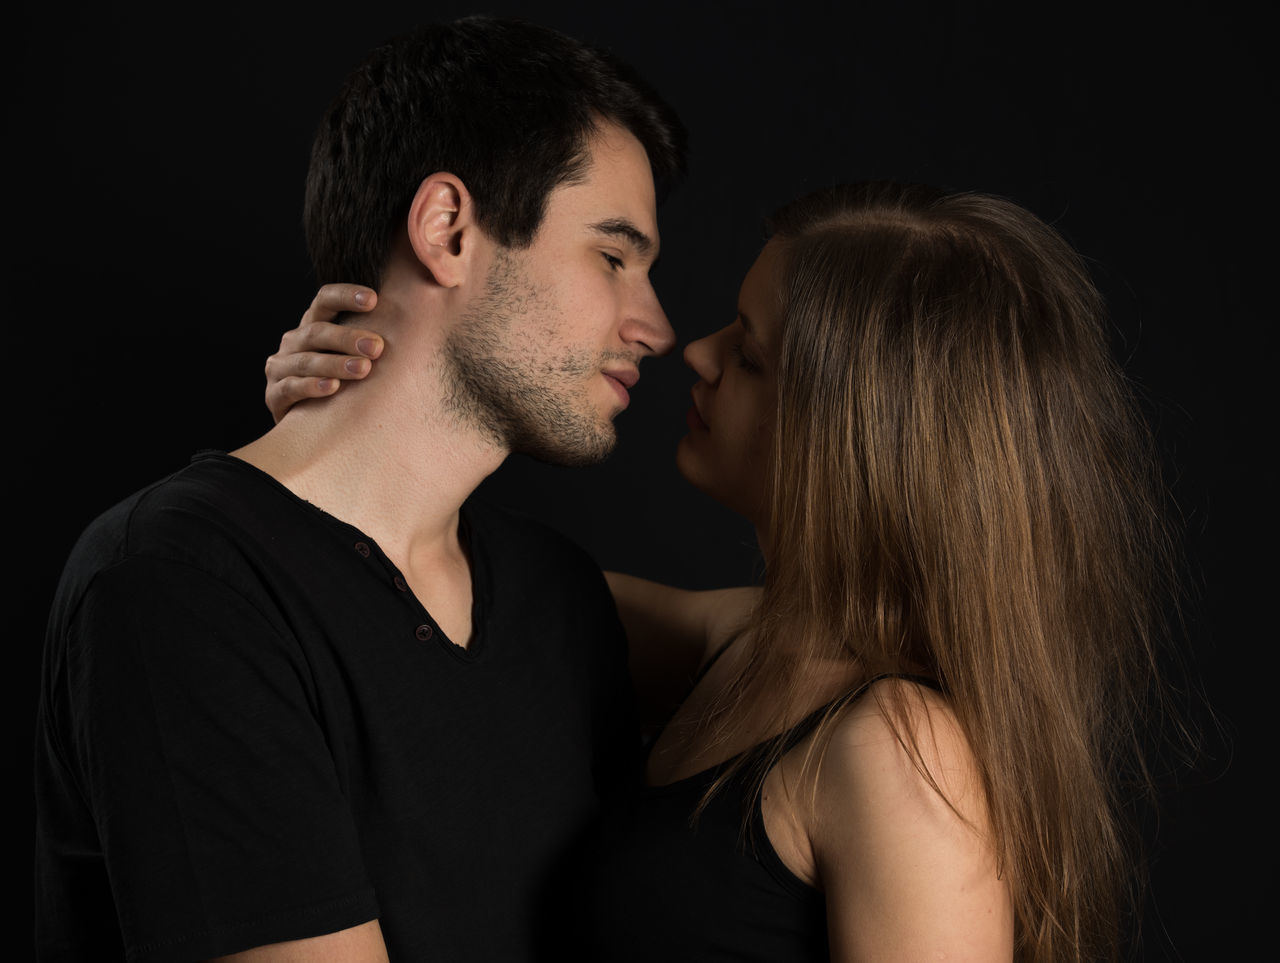 kissing couple Adult Adults Only Black Background Black Color Couple - Relationship Heterosexual Couple Kissimmee Kissing Love Men Night Passion People Romance Studio Shot Togetherness Touching Two People Young Adult Young Couple Young Men Young Women